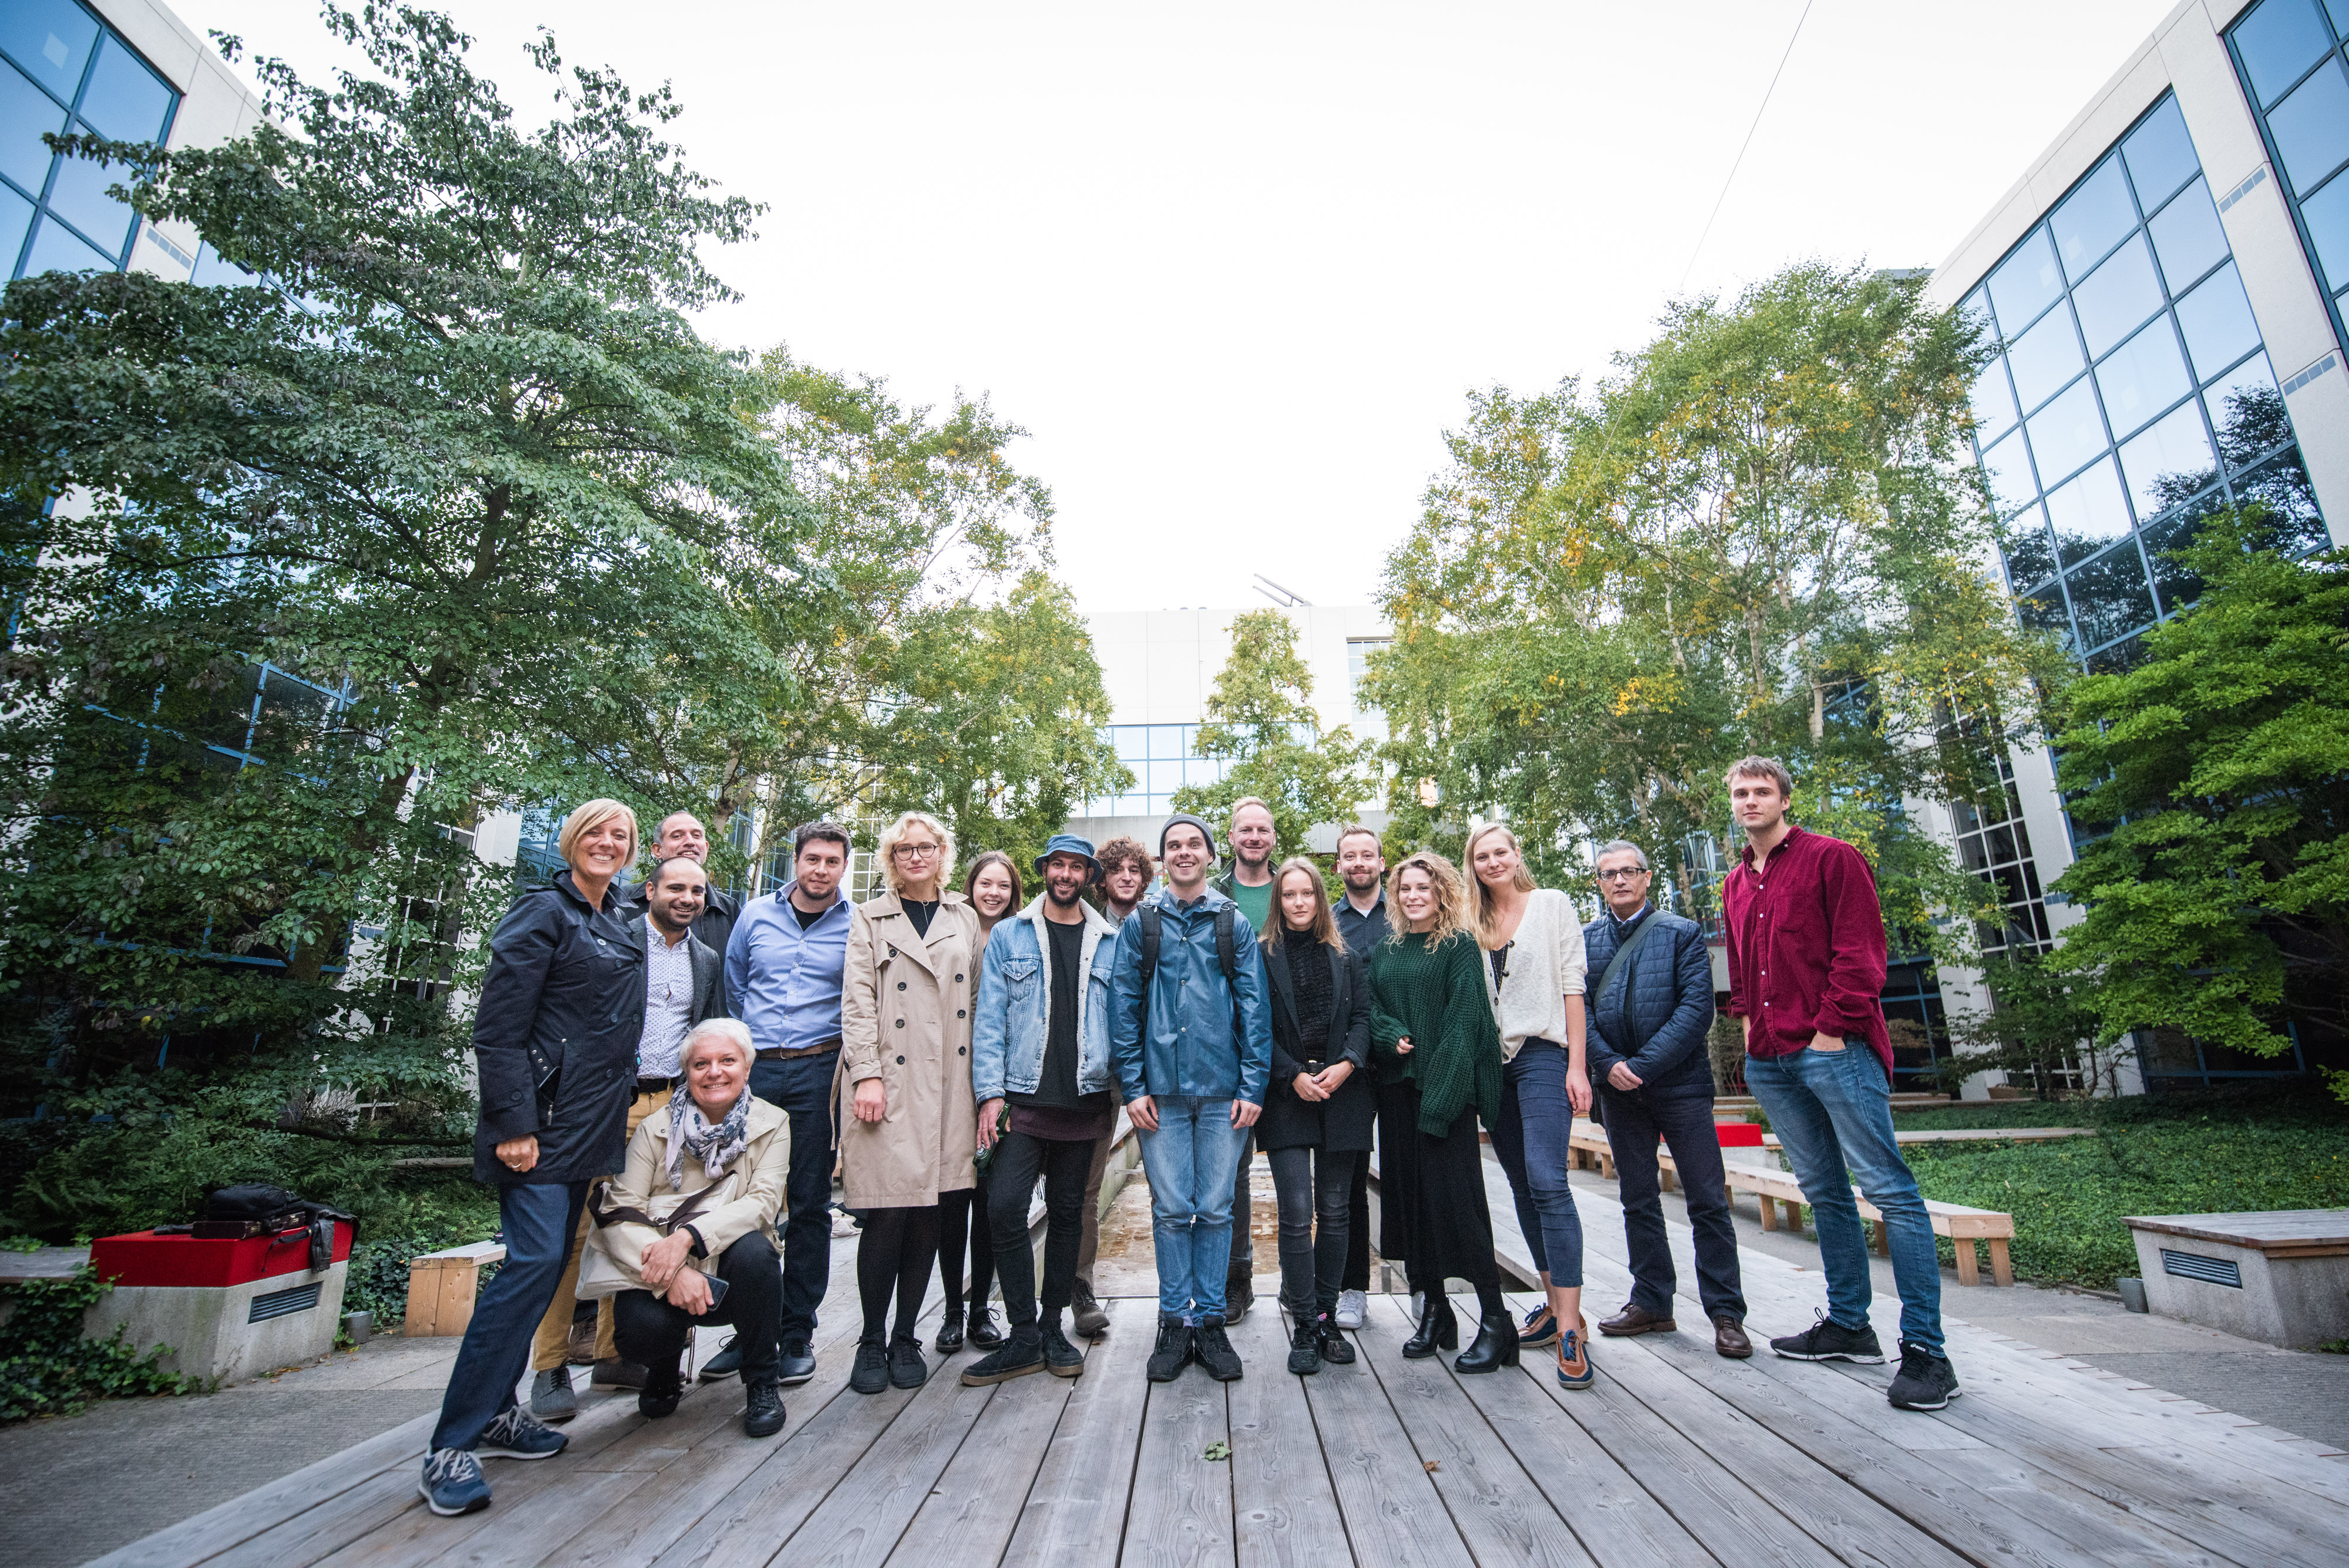 The whole group, including artists, committee members and artistic director